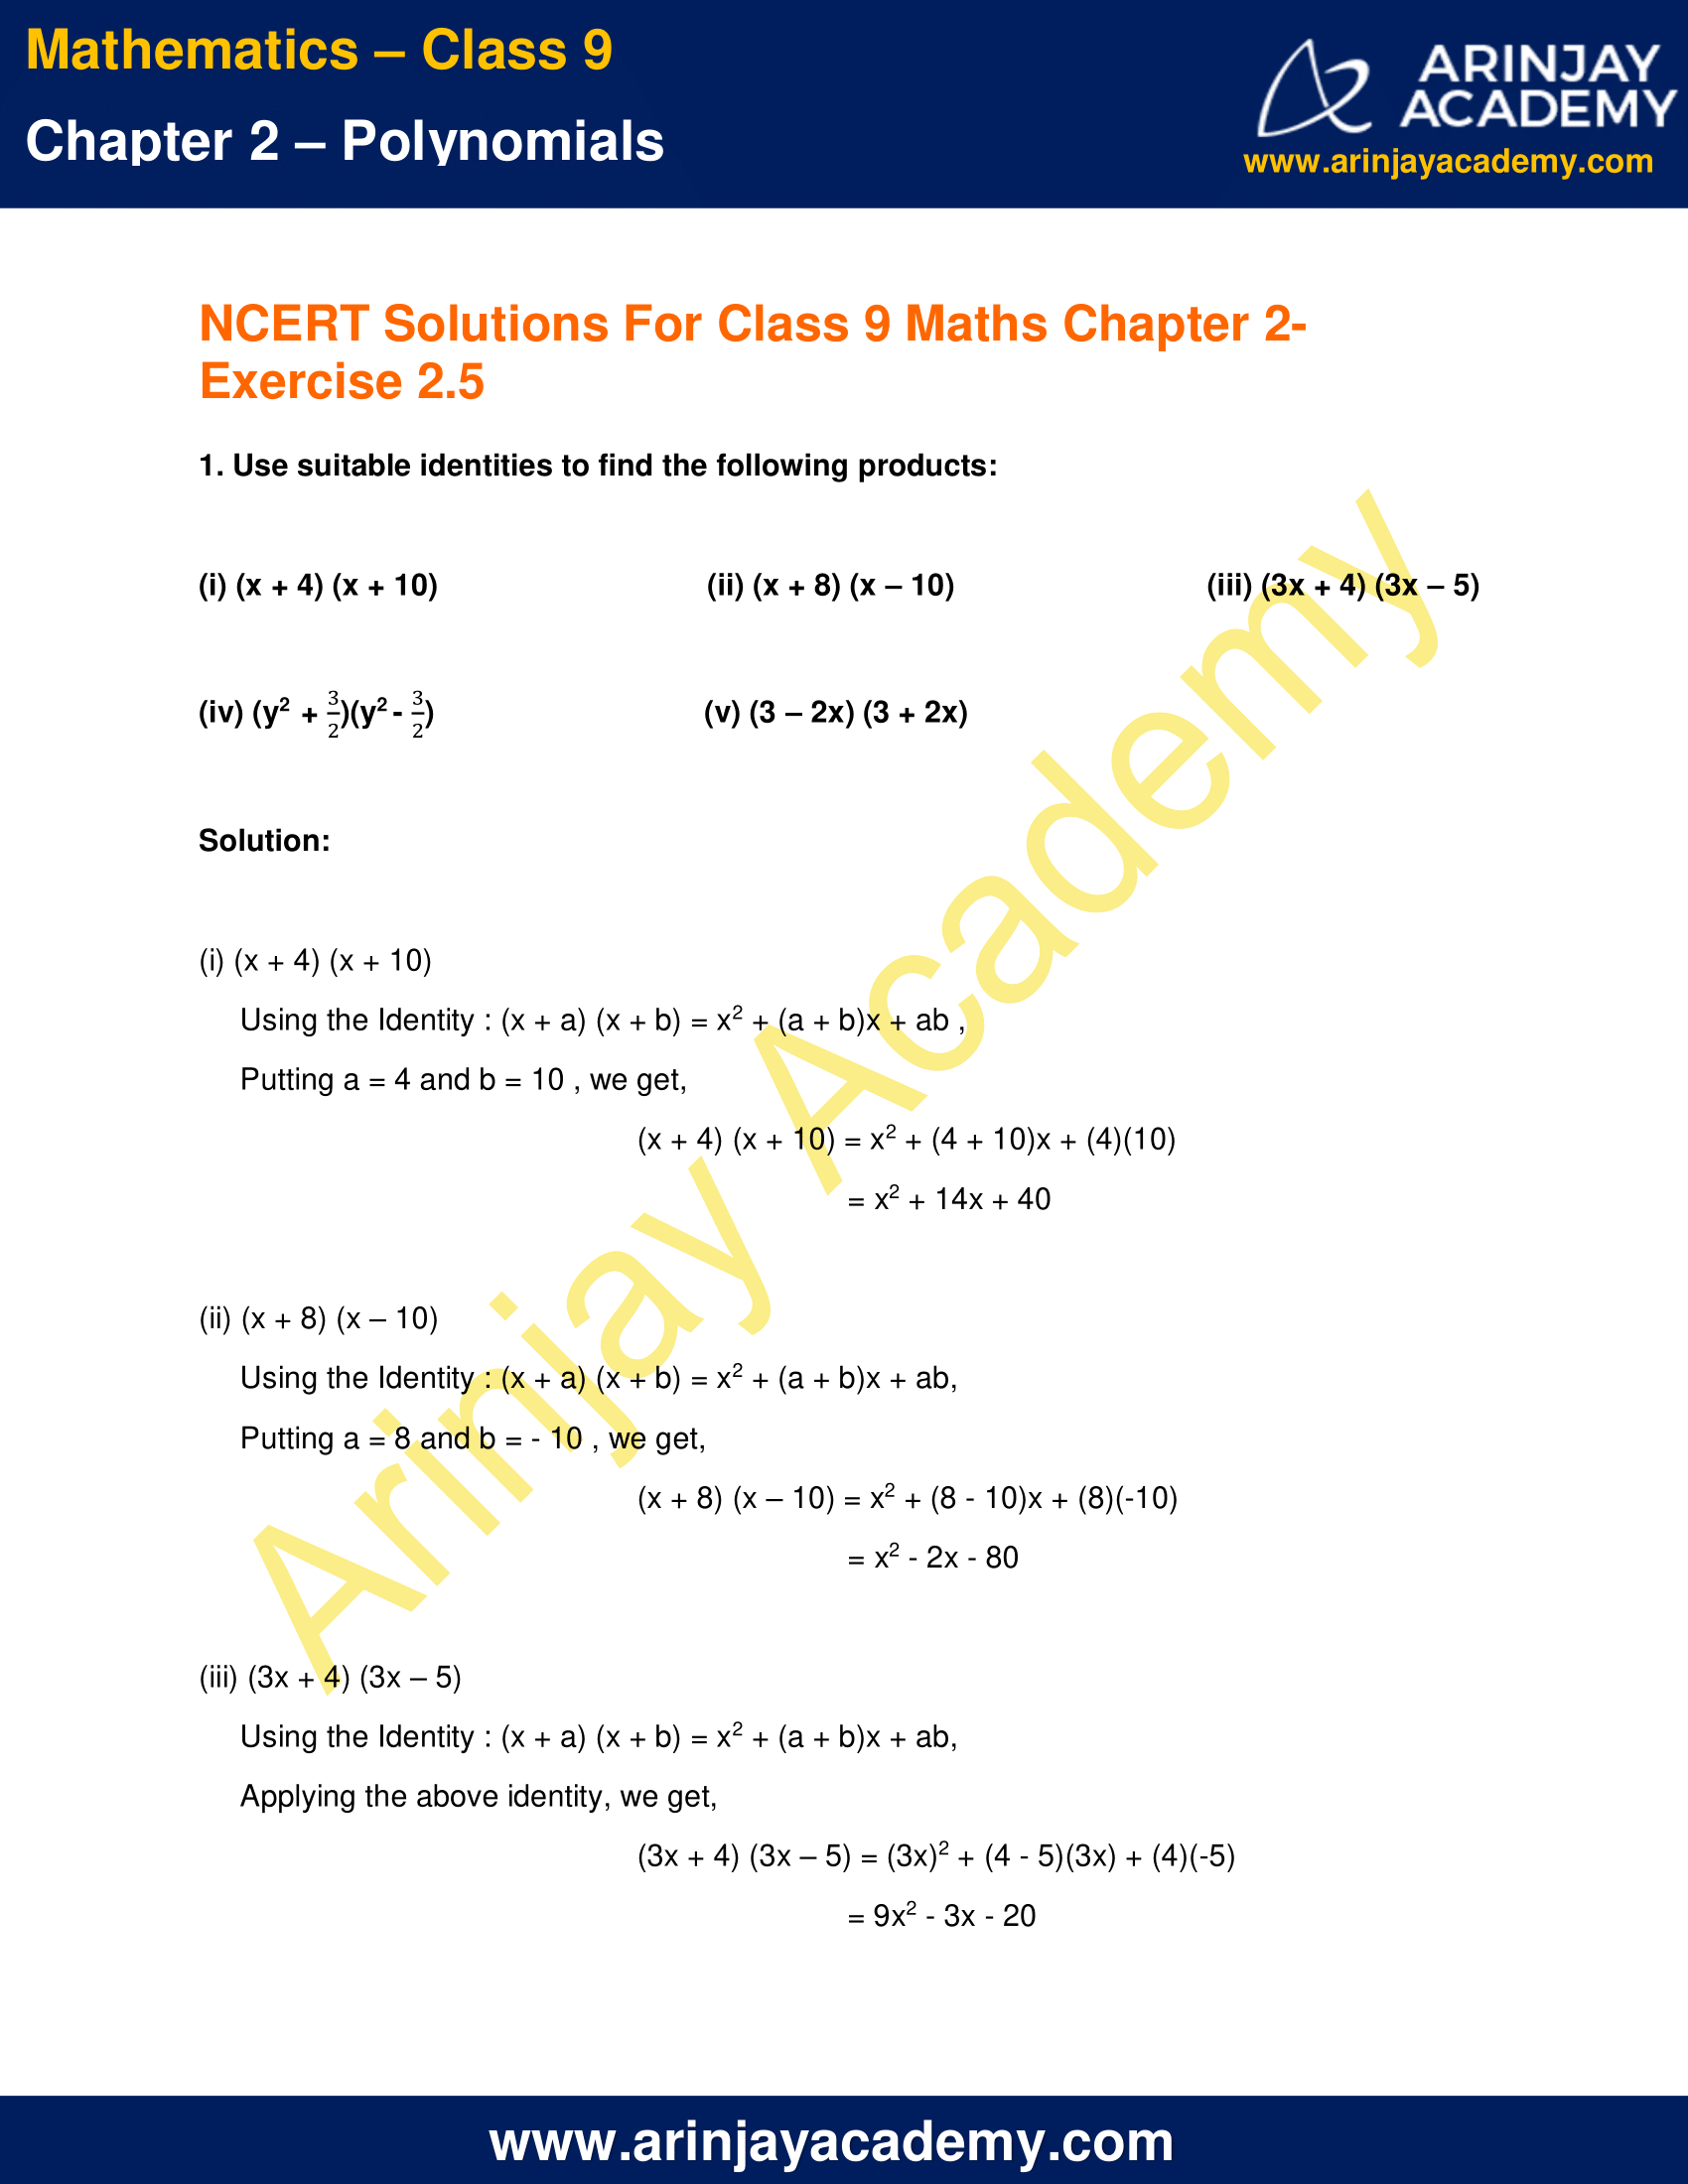 NCERT Solutions for Class 9 Maths Chapter 2 Exercise 2.5 image 1